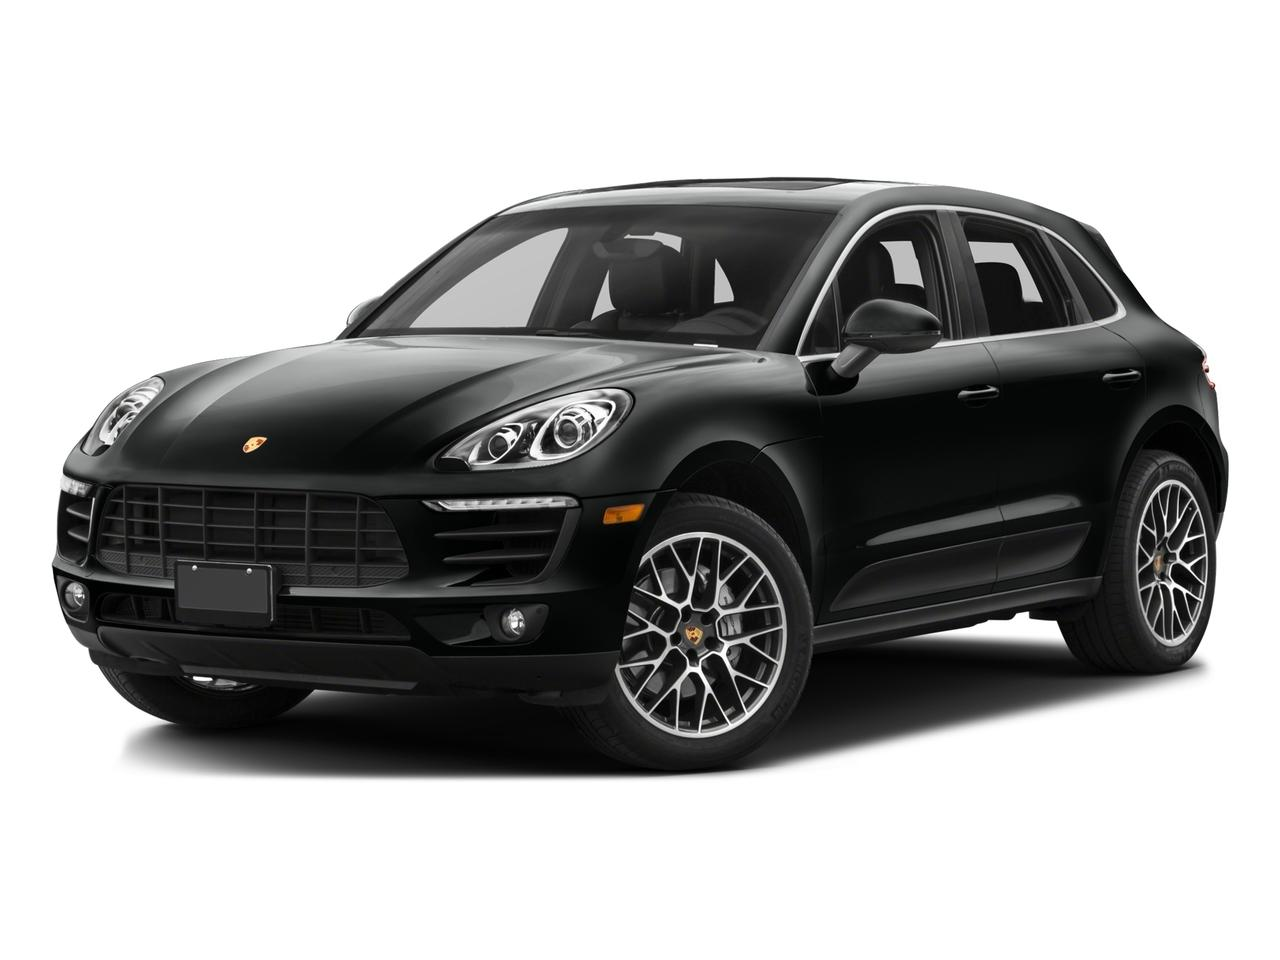 2017 Porsche Macan Vehicle Photo in Bowie, MD 20716